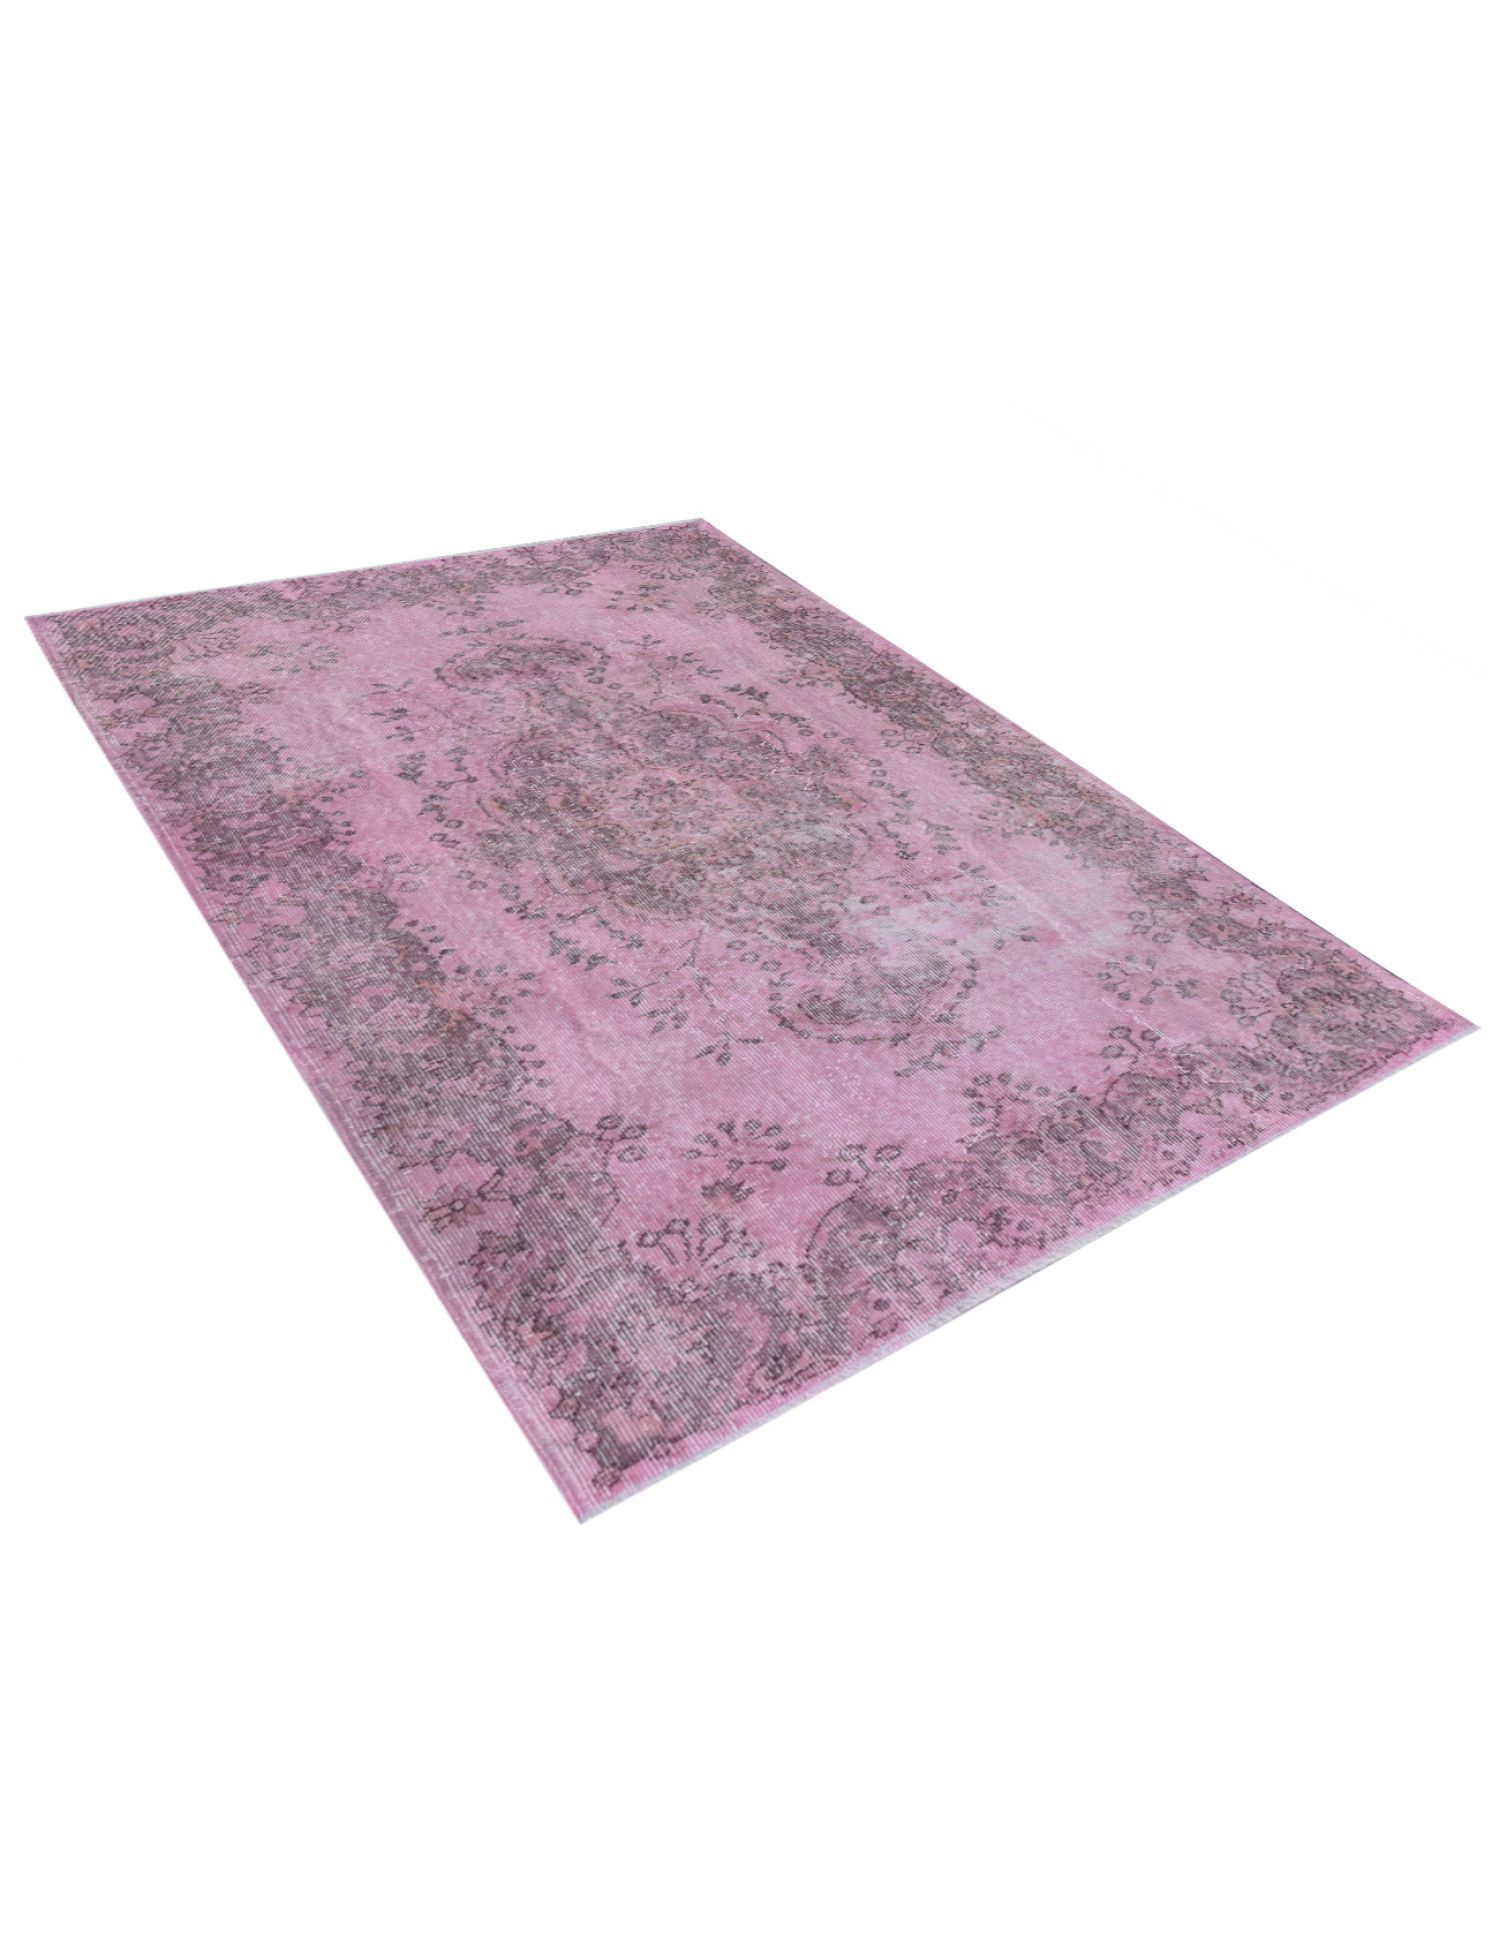 Vintage Carpet  purple <br/>217 x 121 cm